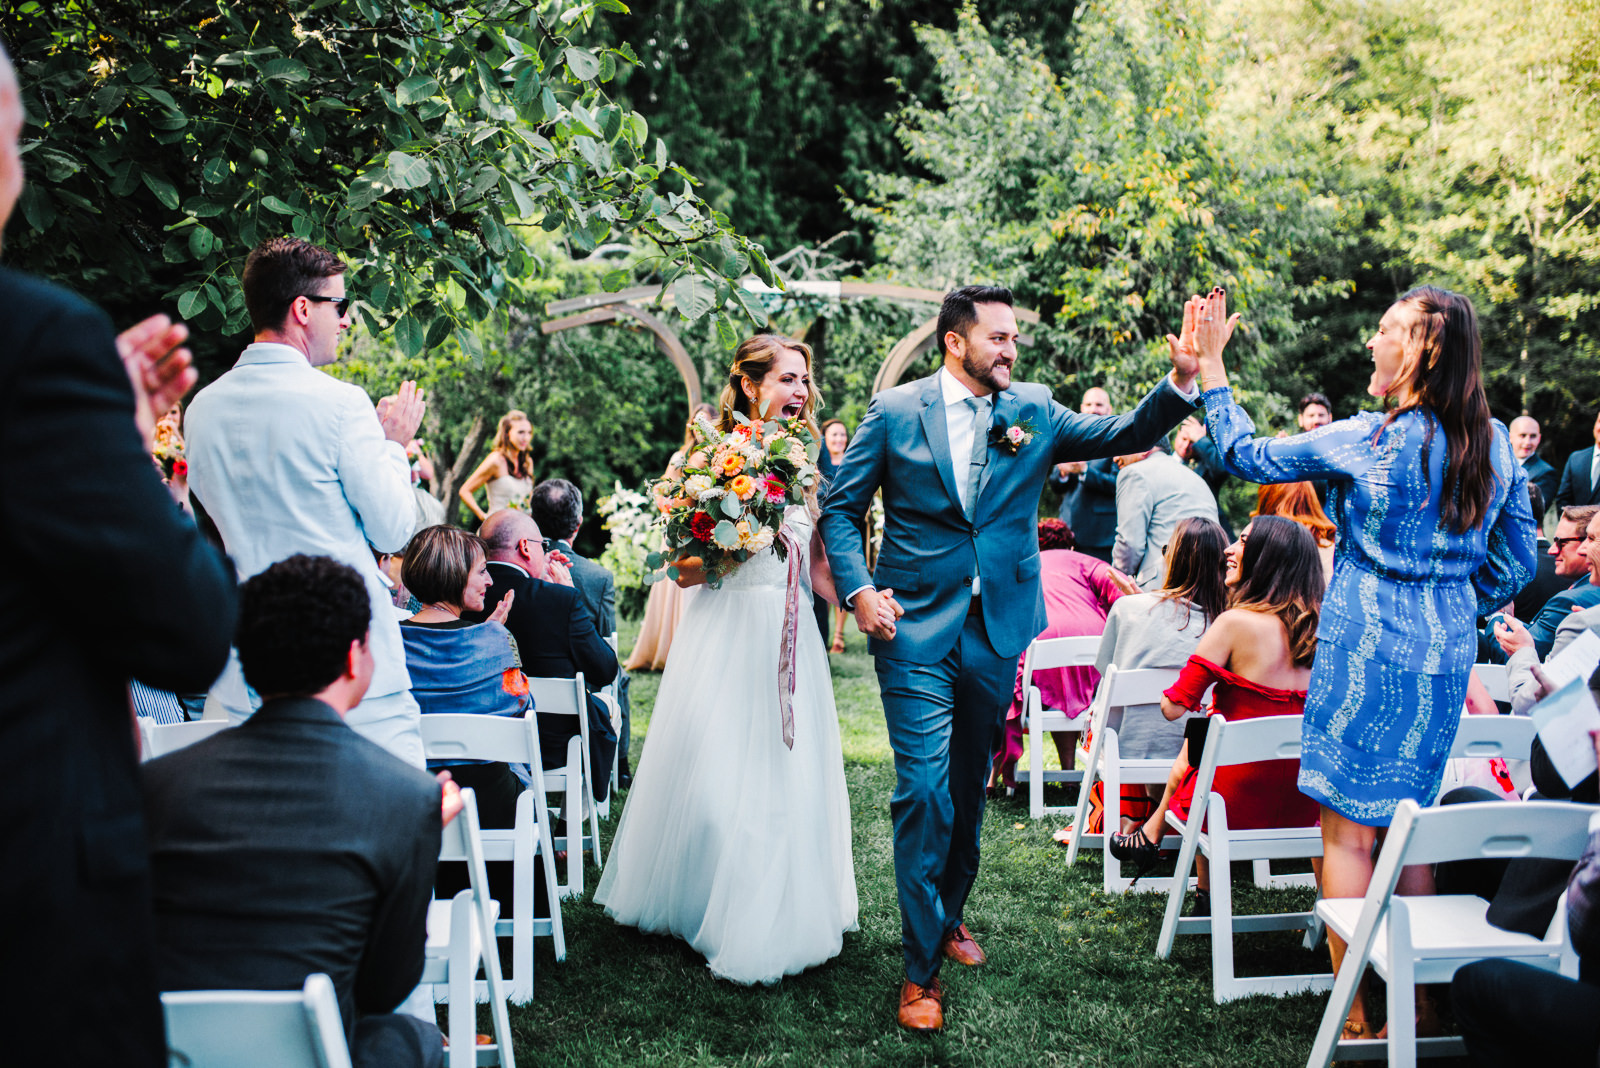 240-the-farm-kitchen-wedding-with-bride-and-groom-high-fiving-guests.jpg